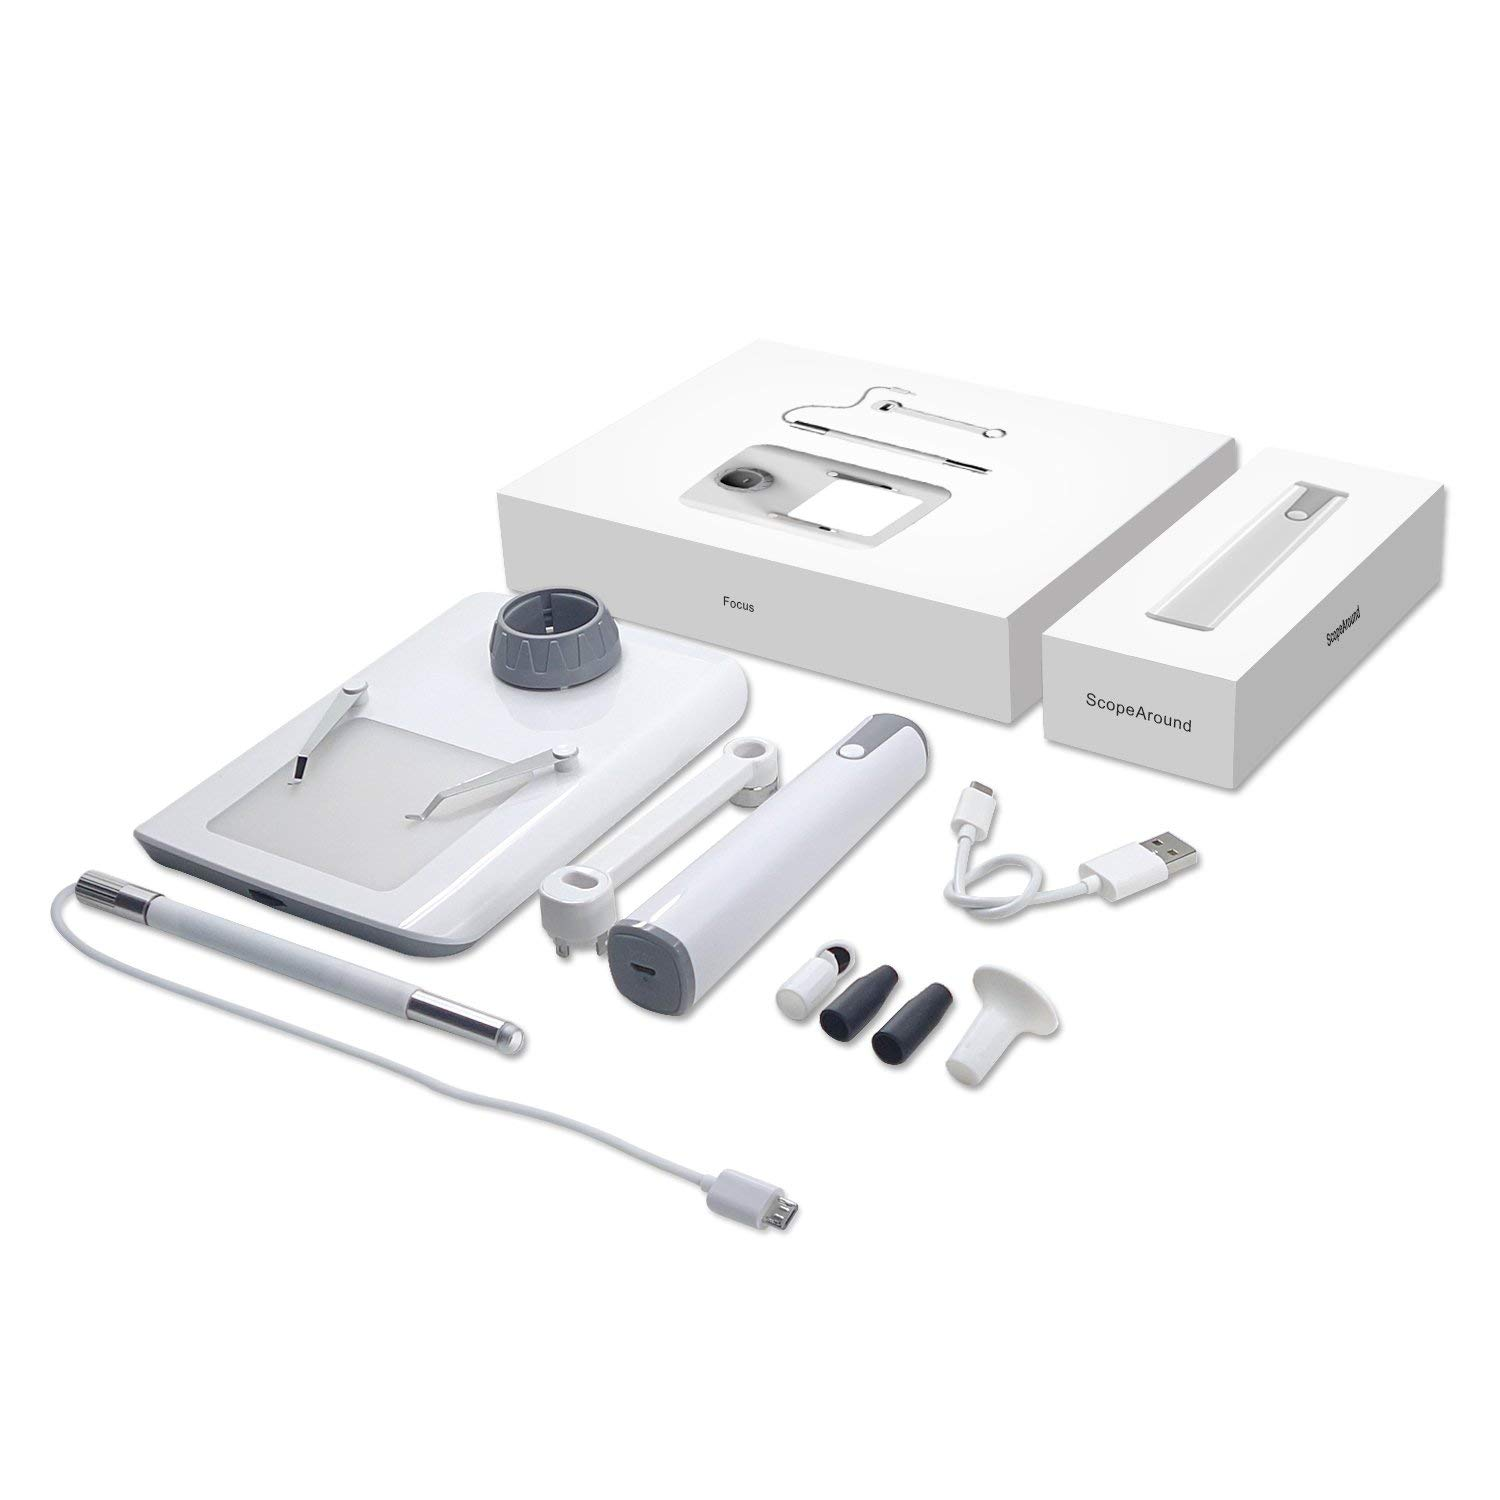 Wireless Microscope, ScopeAround WiFi Microscope Multi-Function Magnifier Digital Otoscope with CMOS Sensor 150x Magnification for iPhone iPad Samsung LG Sony Mac and PC by ScopeAround